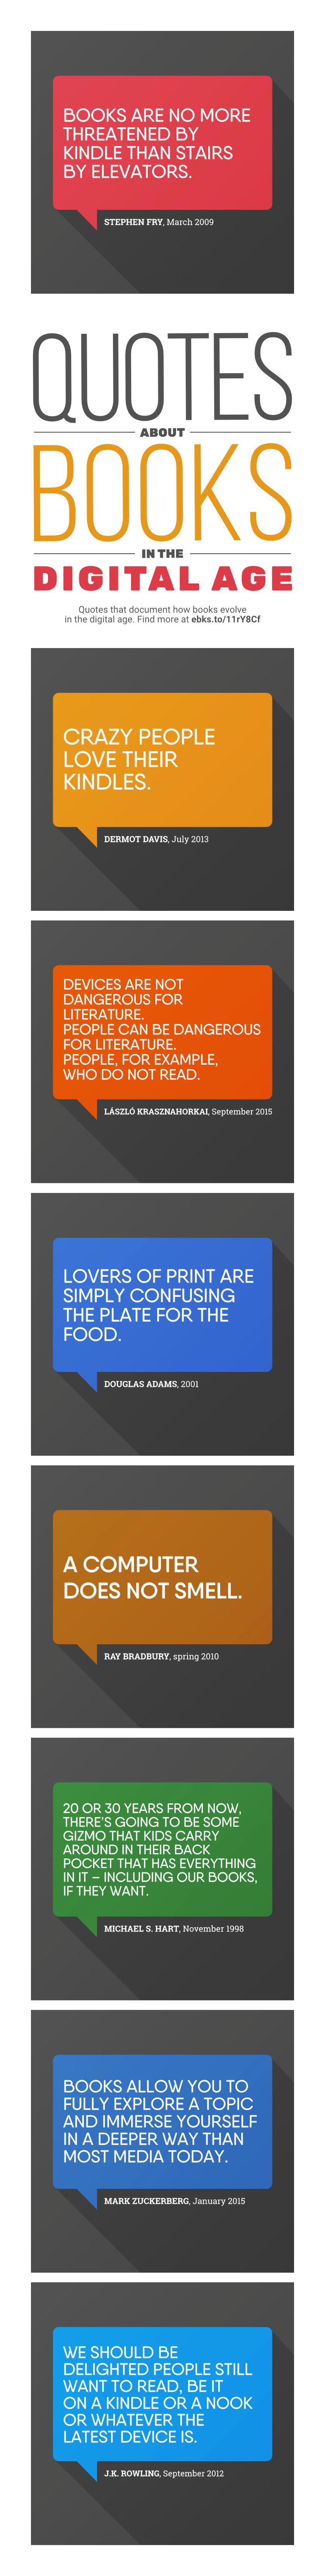 Most interesting quotes about how books evolve in the digital era #infographic